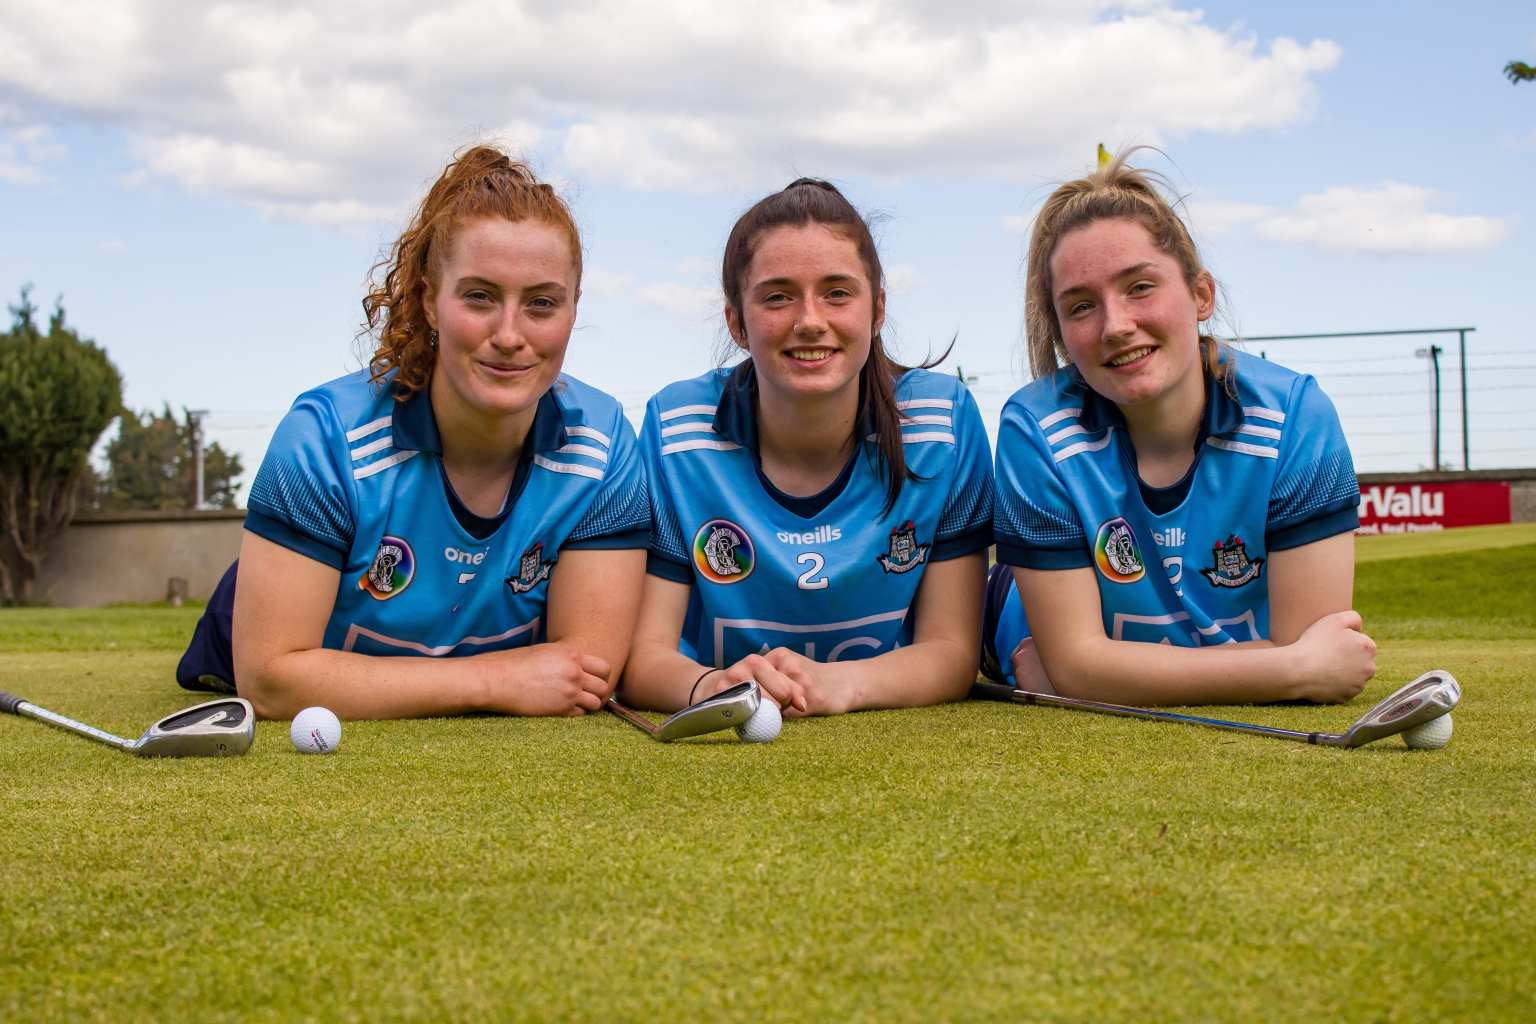 Three Dublin Camogie Players In sky blue jerseys lying down on a golf green with golf clubs and balls in front of them to advertise the Dublin Camogie weekly notes which include info on the camogie Golf Classic and Dublin Poc Fada